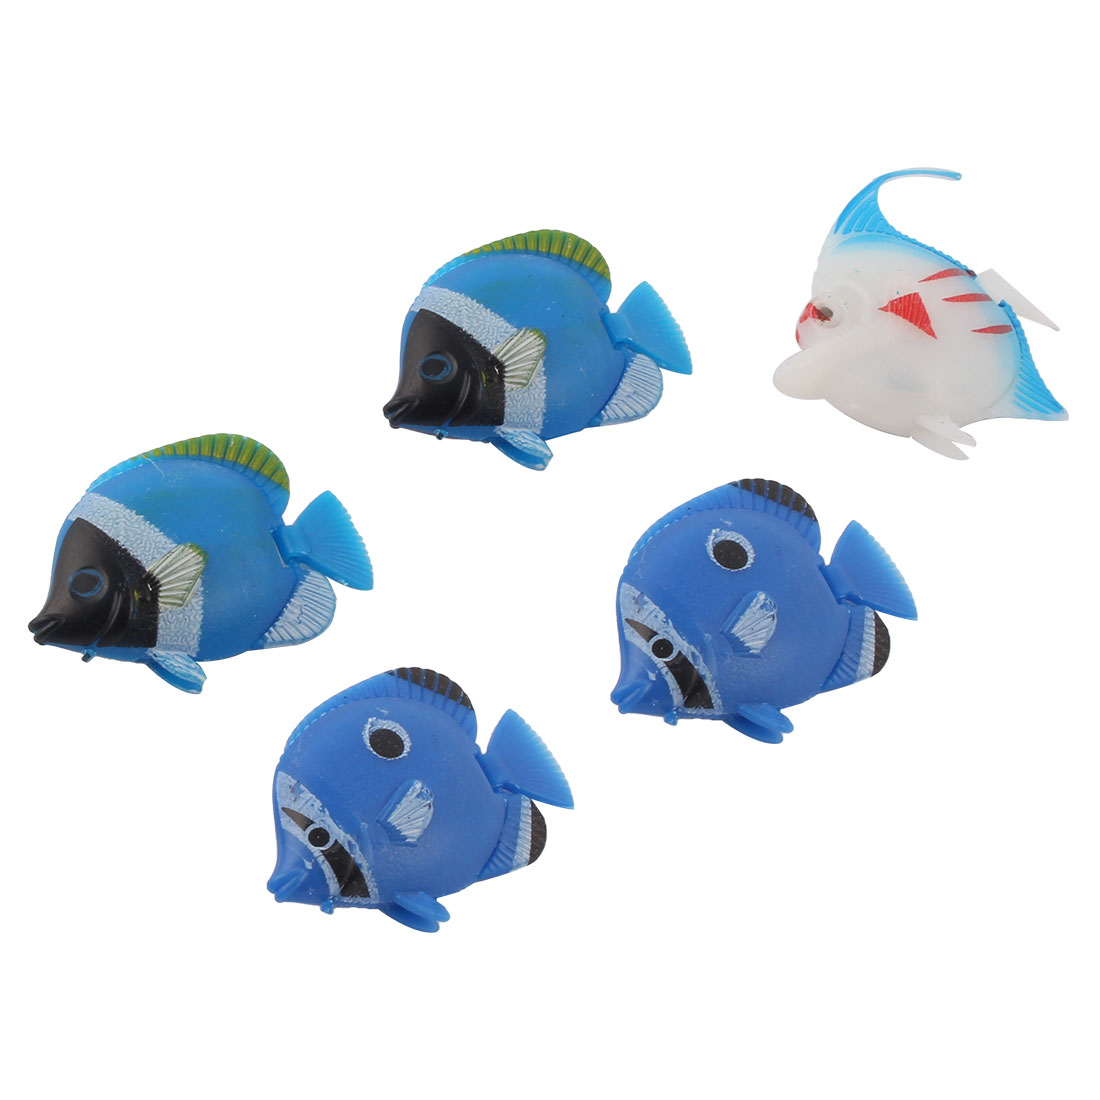 Plastic Artificial Fishes Ornament Multicolor 5 Pcs for Aquarium Fish Tank